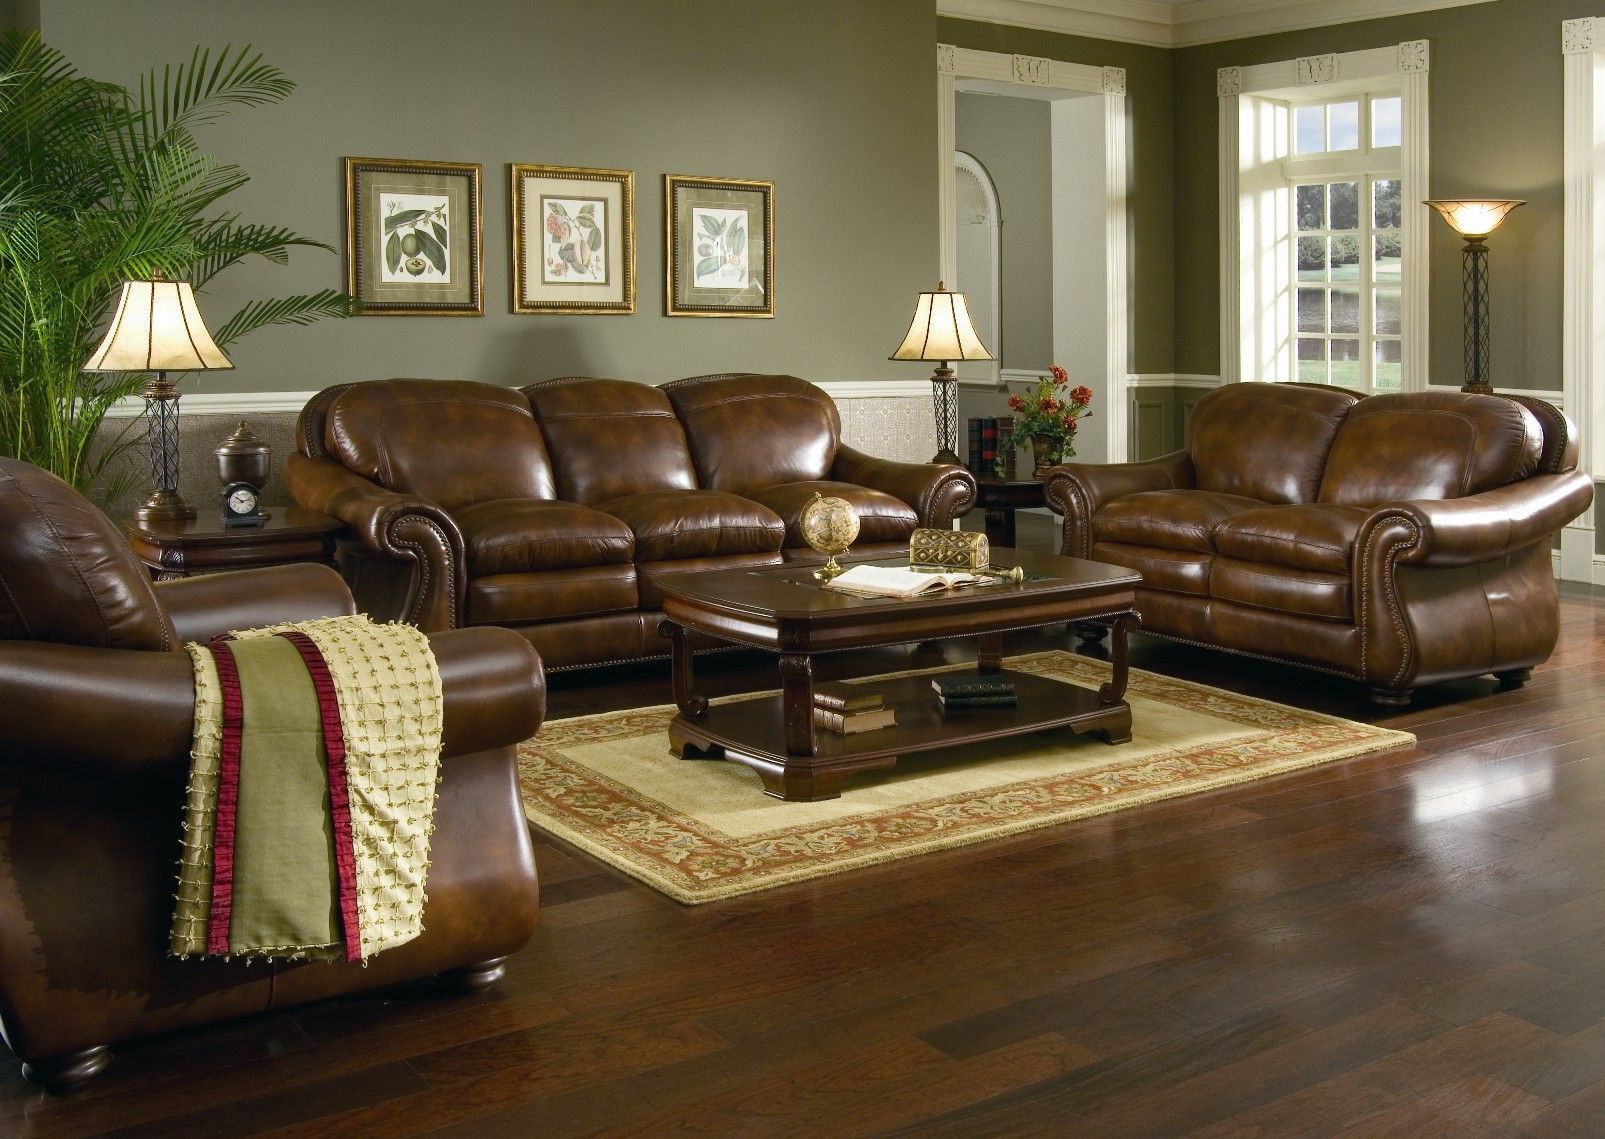 Brown Leather Sofa Set For Living Room With Dark Hardwood Floors Furniture Prepare